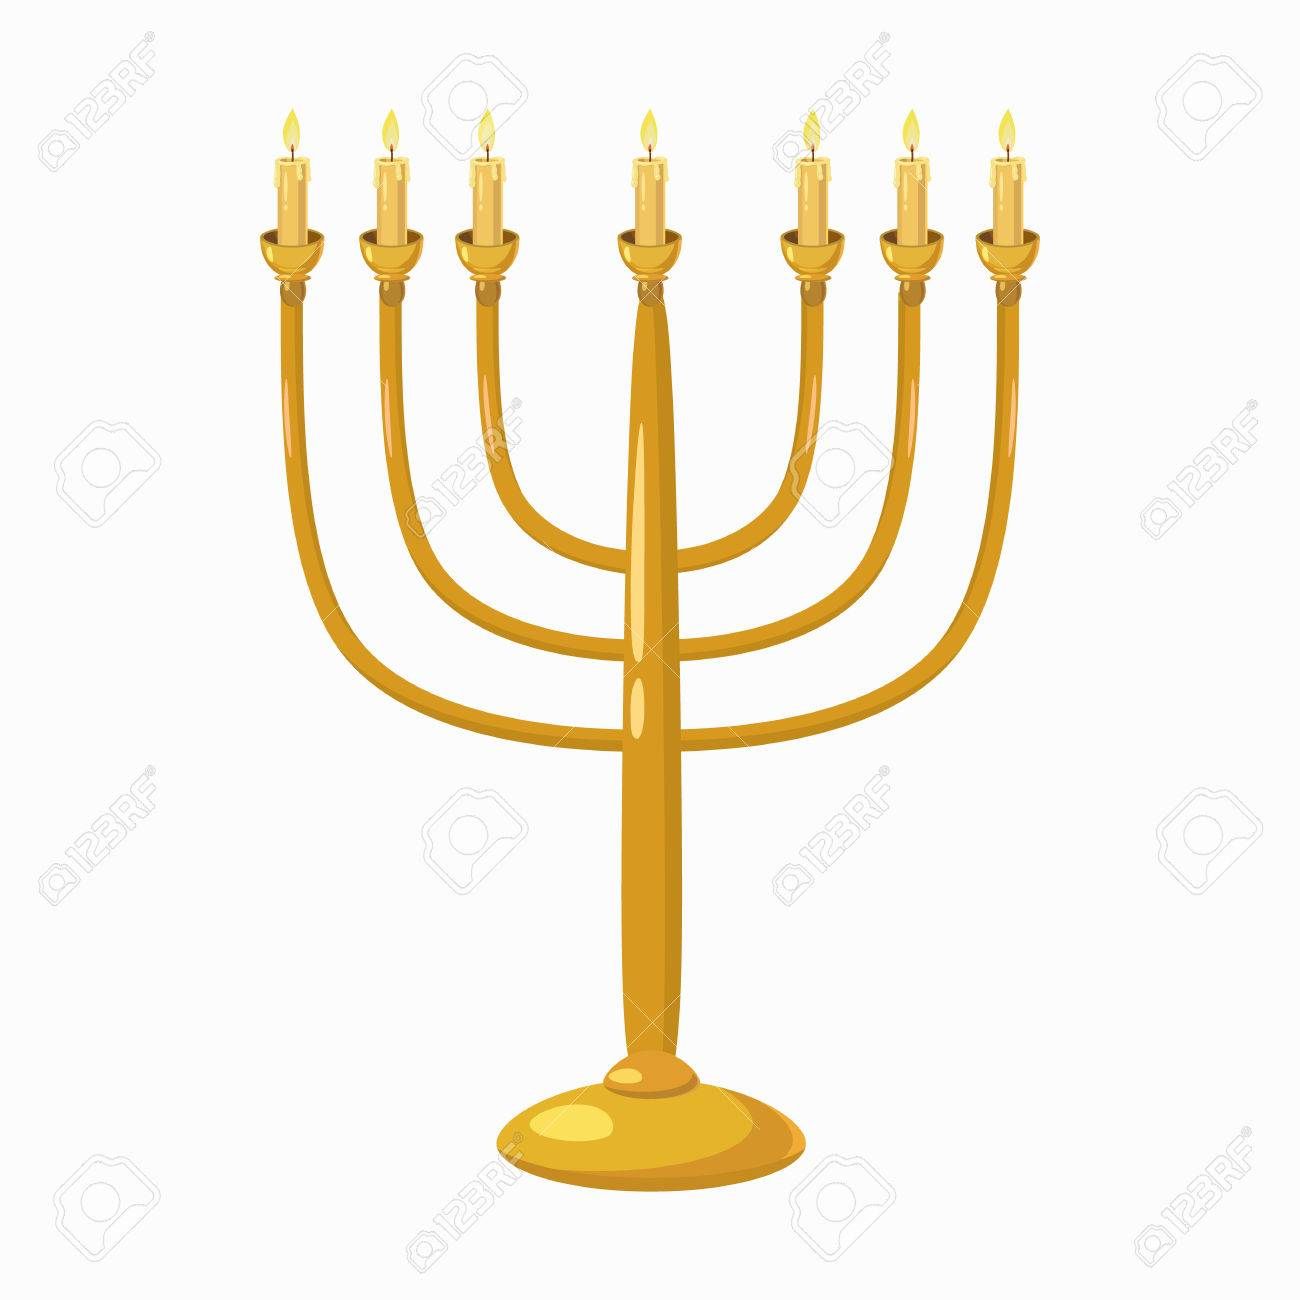 Jewish menorah with candles icon in cartoon style isolated on jewish menorah with candles icon in cartoon style isolated on white background stock vector 55045664 biocorpaavc Image collections